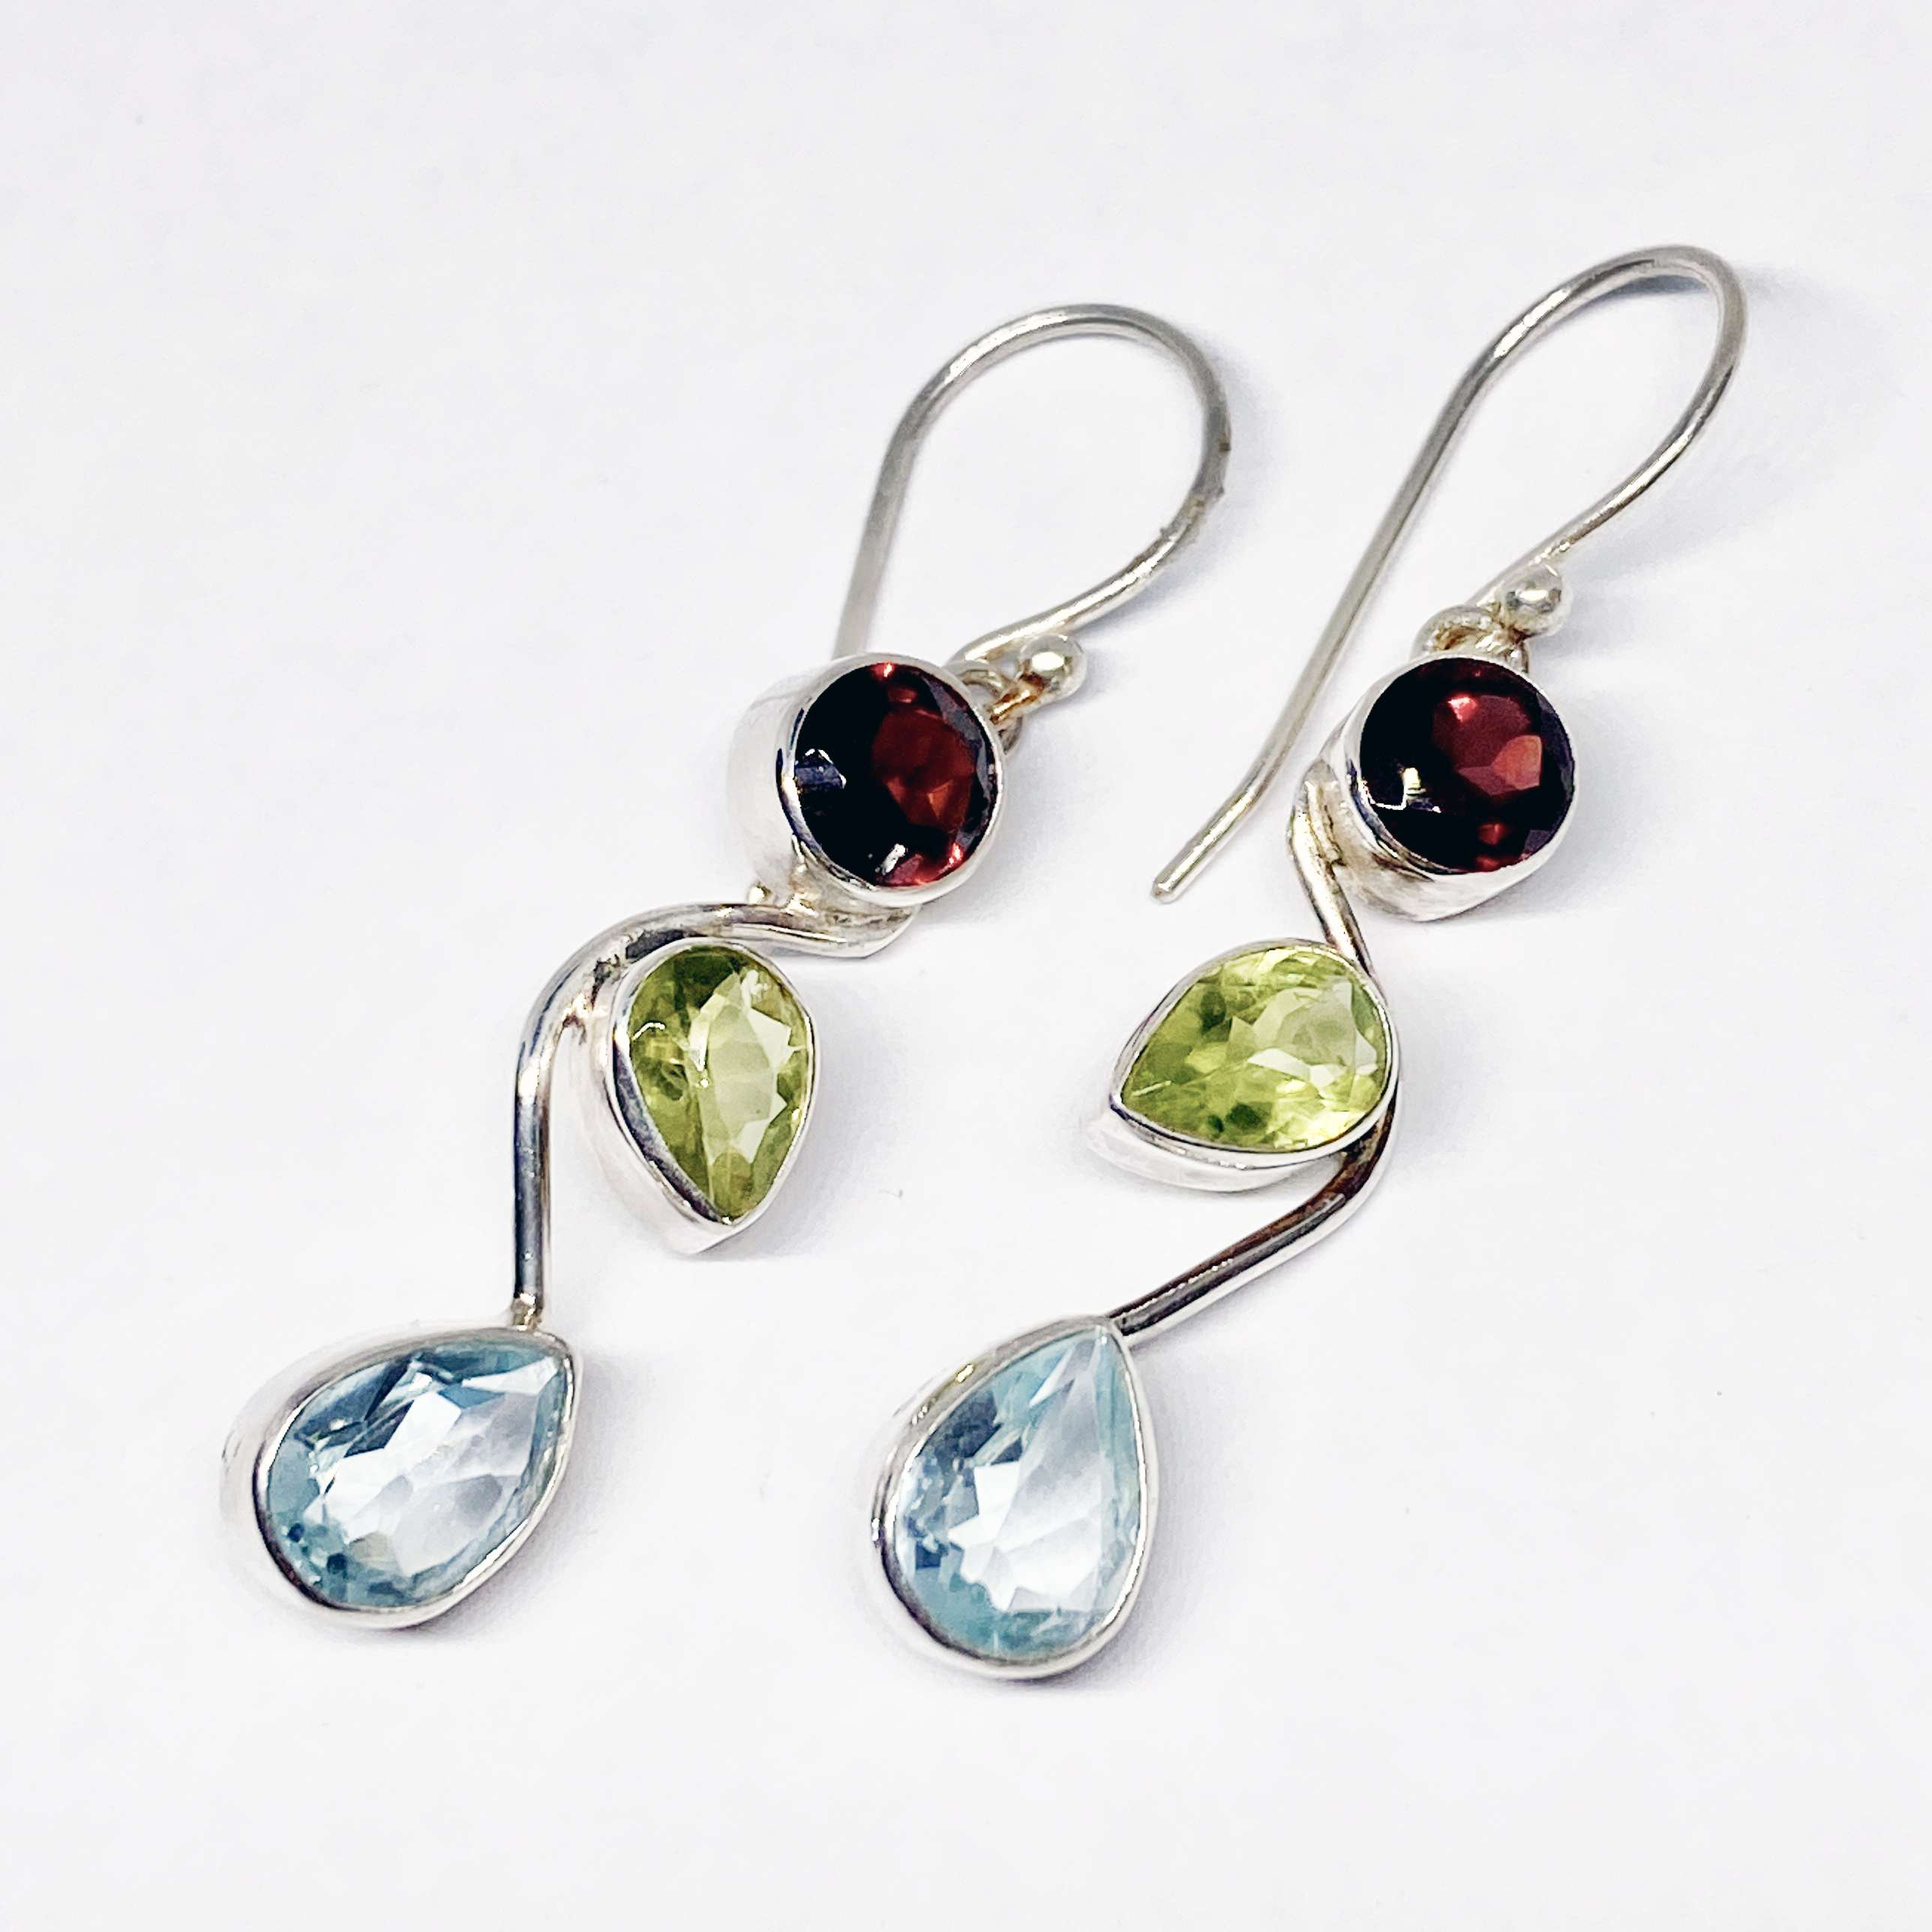 (HANDMADE 925 BALI SILVER EARRINGS WITH MIX GEMSTONES)